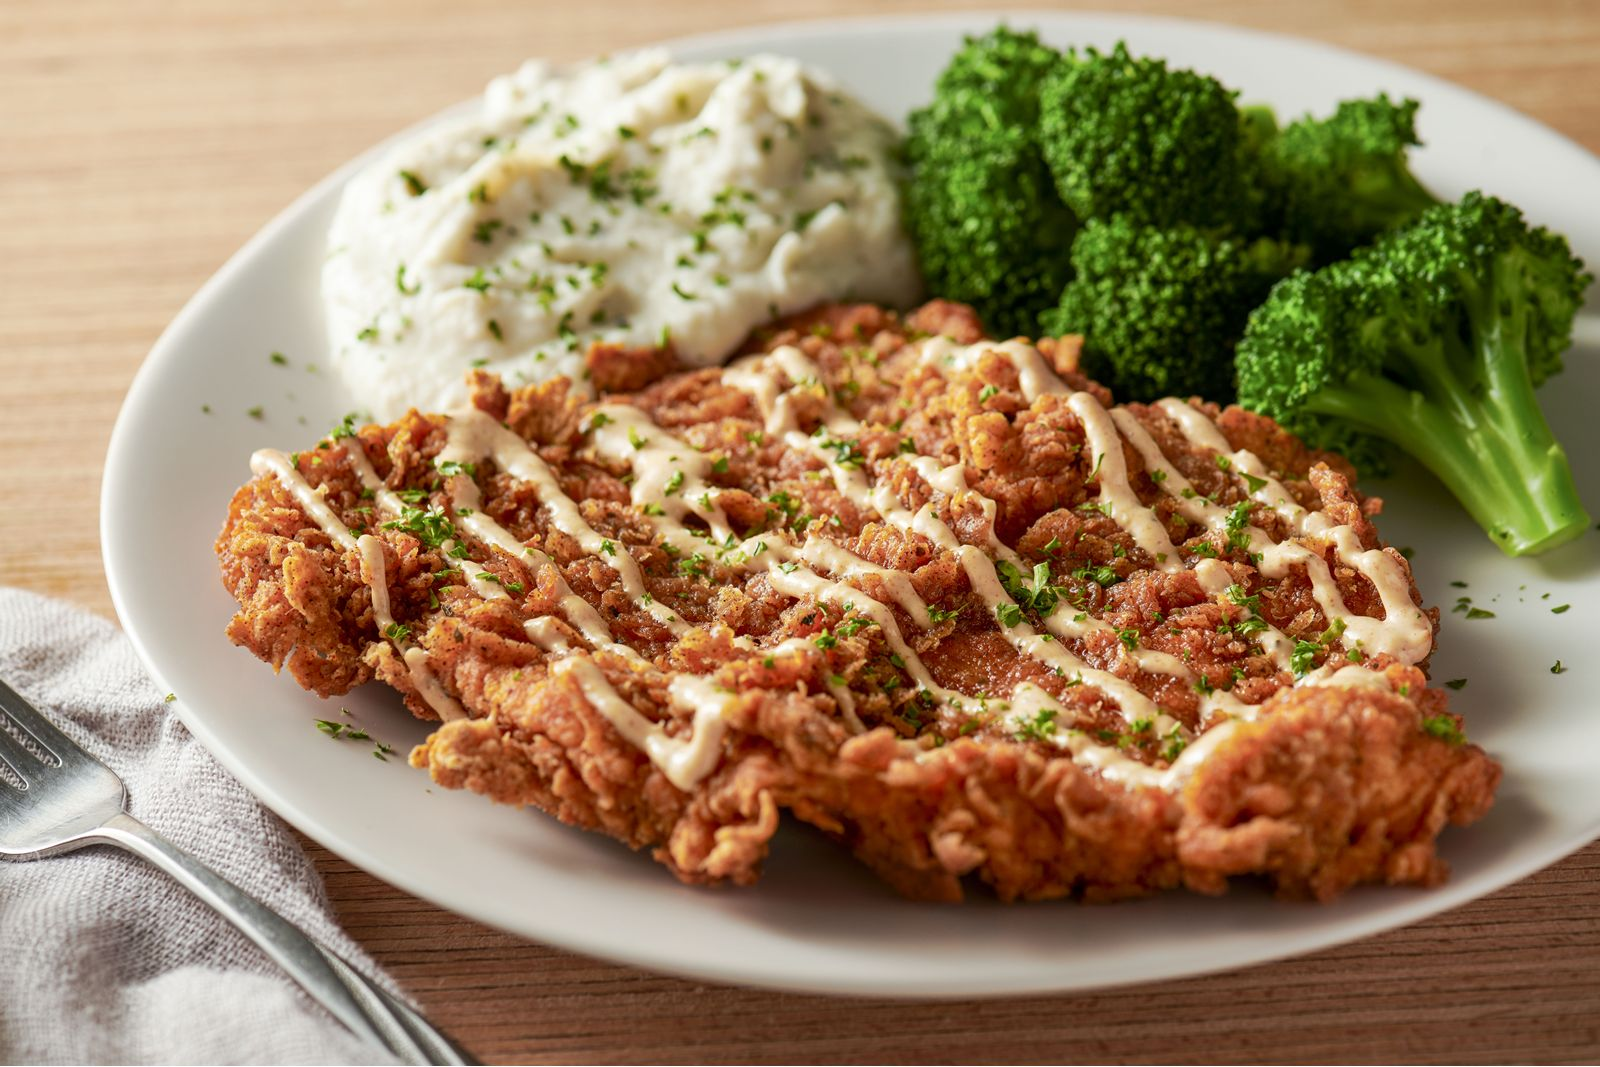 Outback Steakhouse's Iconic Bloomin' Onion Inspires New Menu Selections